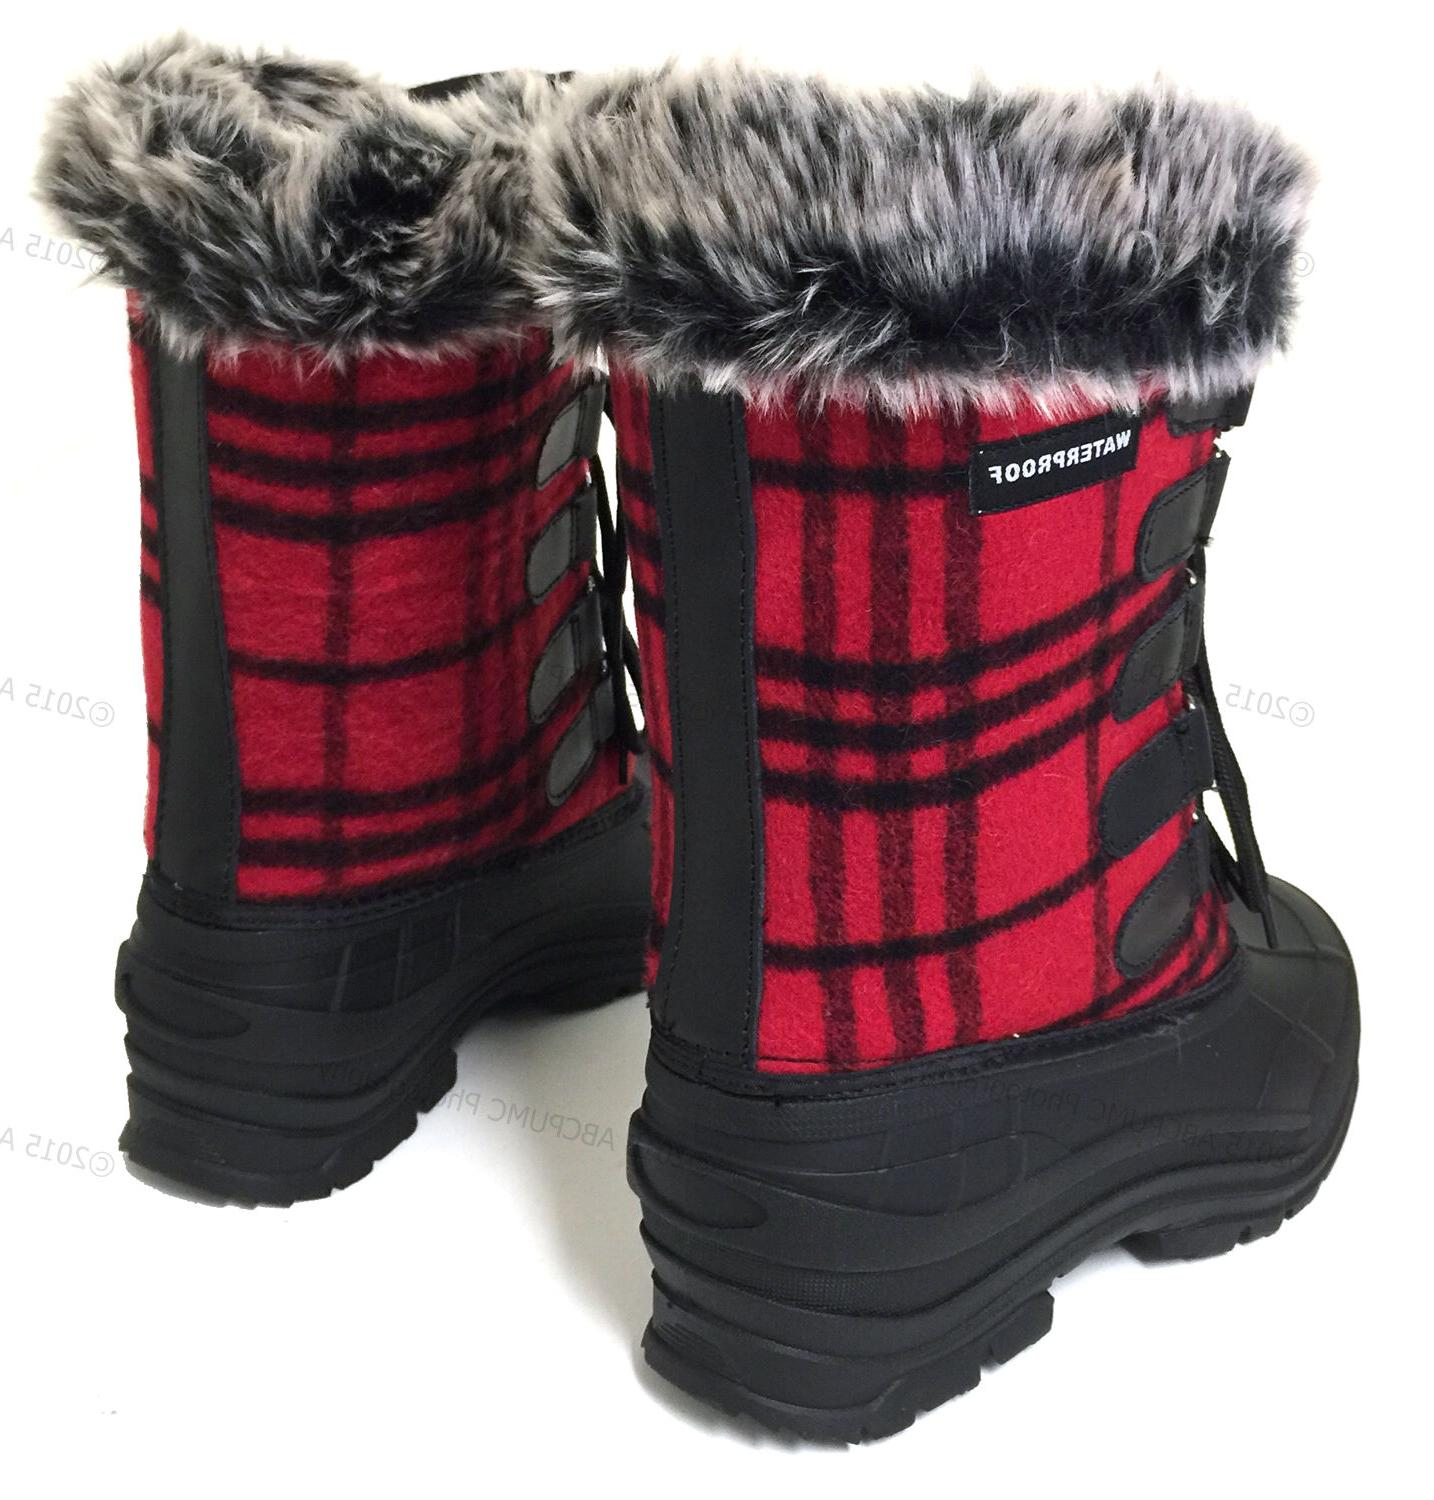 Womens Winter Plaid Waterproof